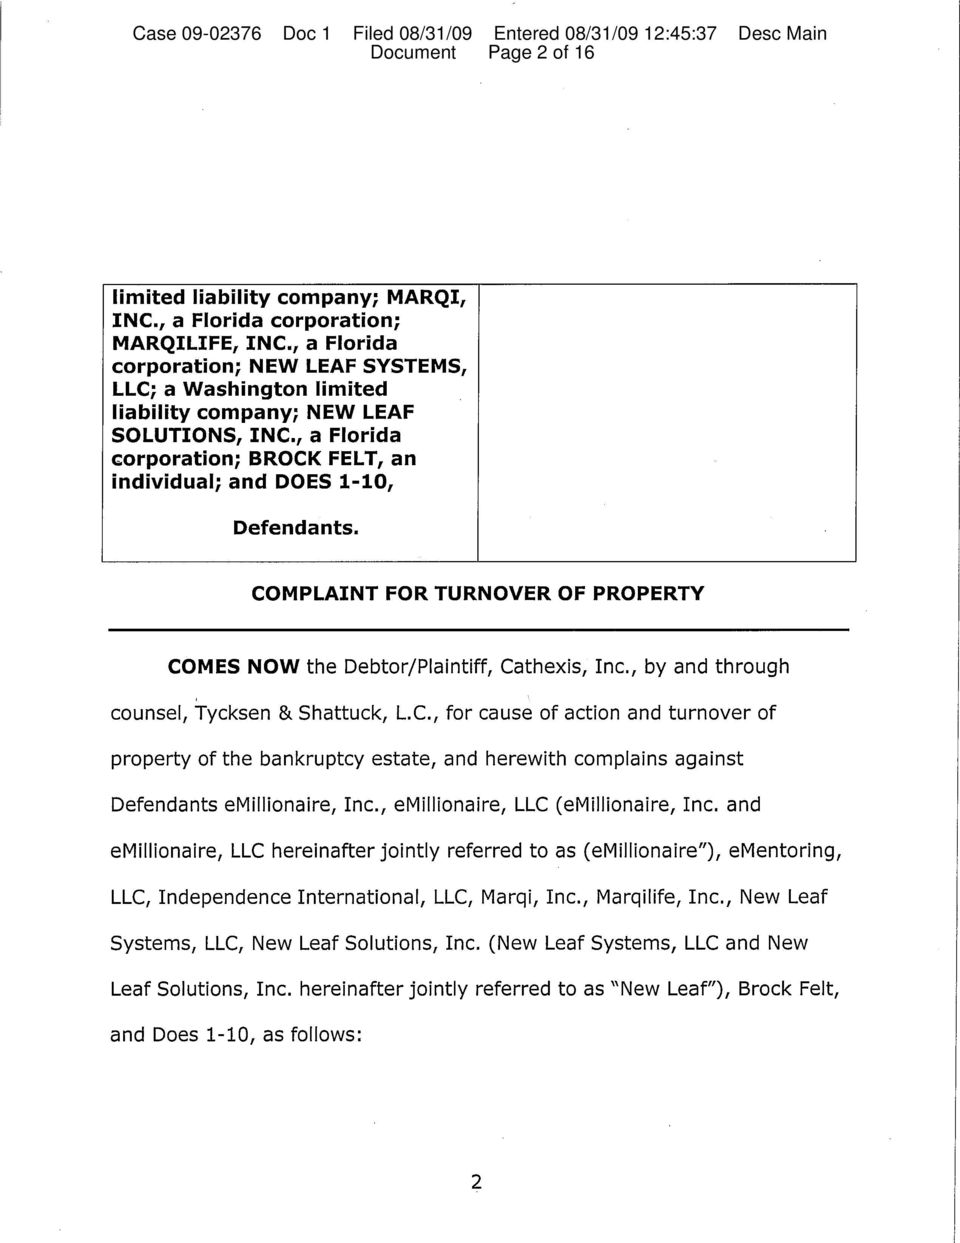 COMPLAINT FOR TURNOVER OF PROPERTY COMES NOW the Debtor/Plaintiff, Cathexis, Inc.